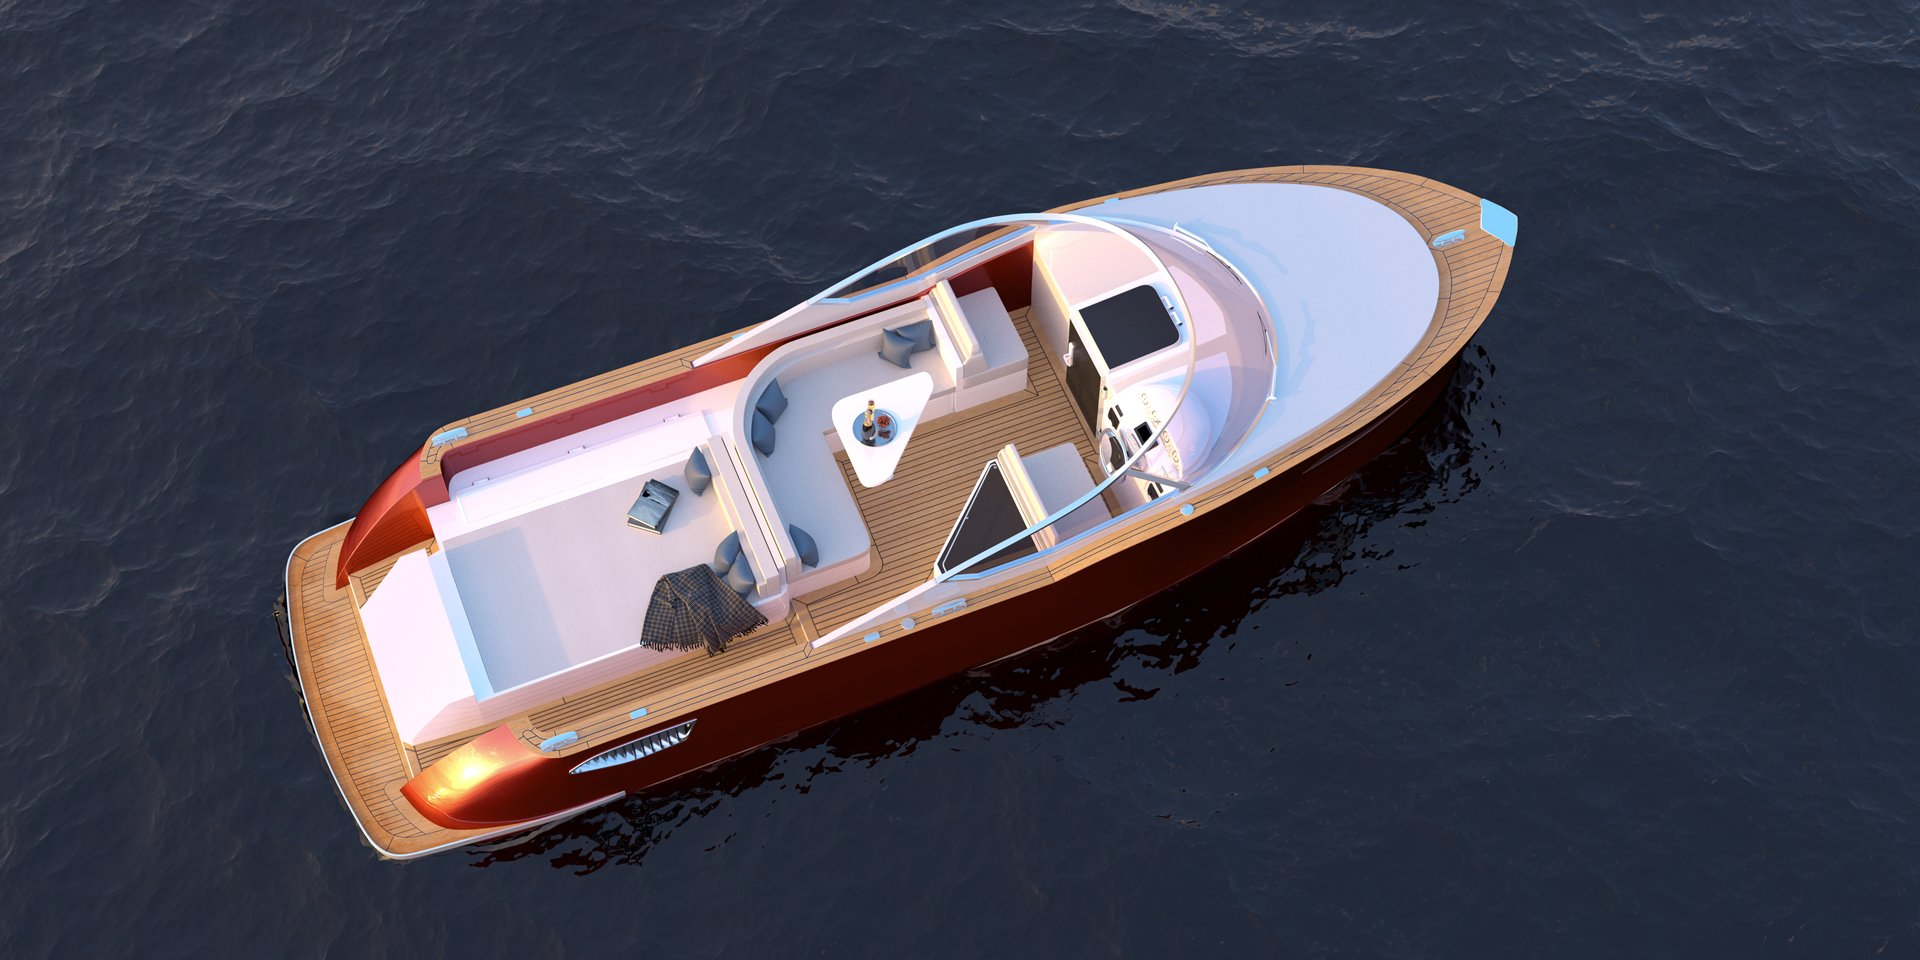 3d-configurator-online-Cayos-Render-full-boat-view